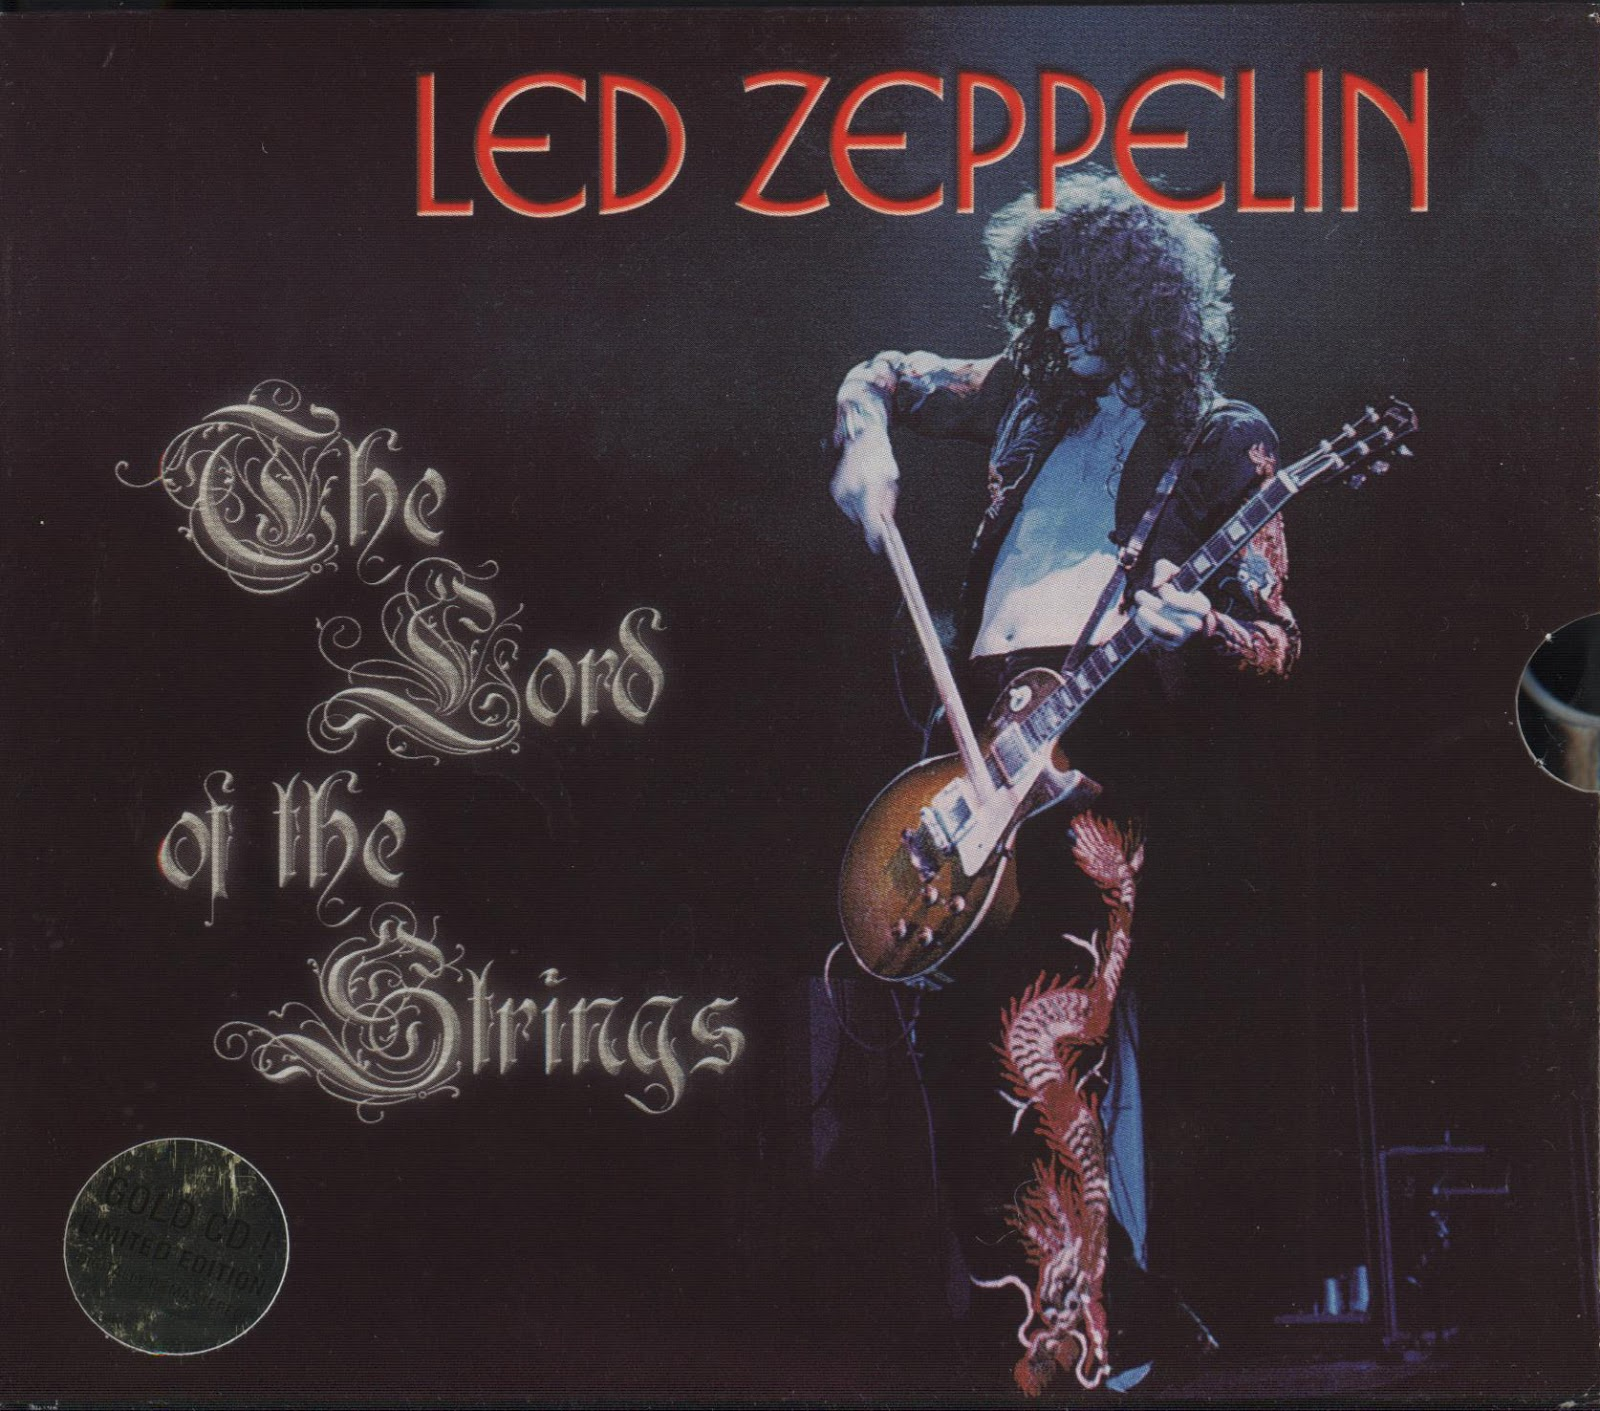 1977 - Led Zeppelin - The Lord Of The Strings